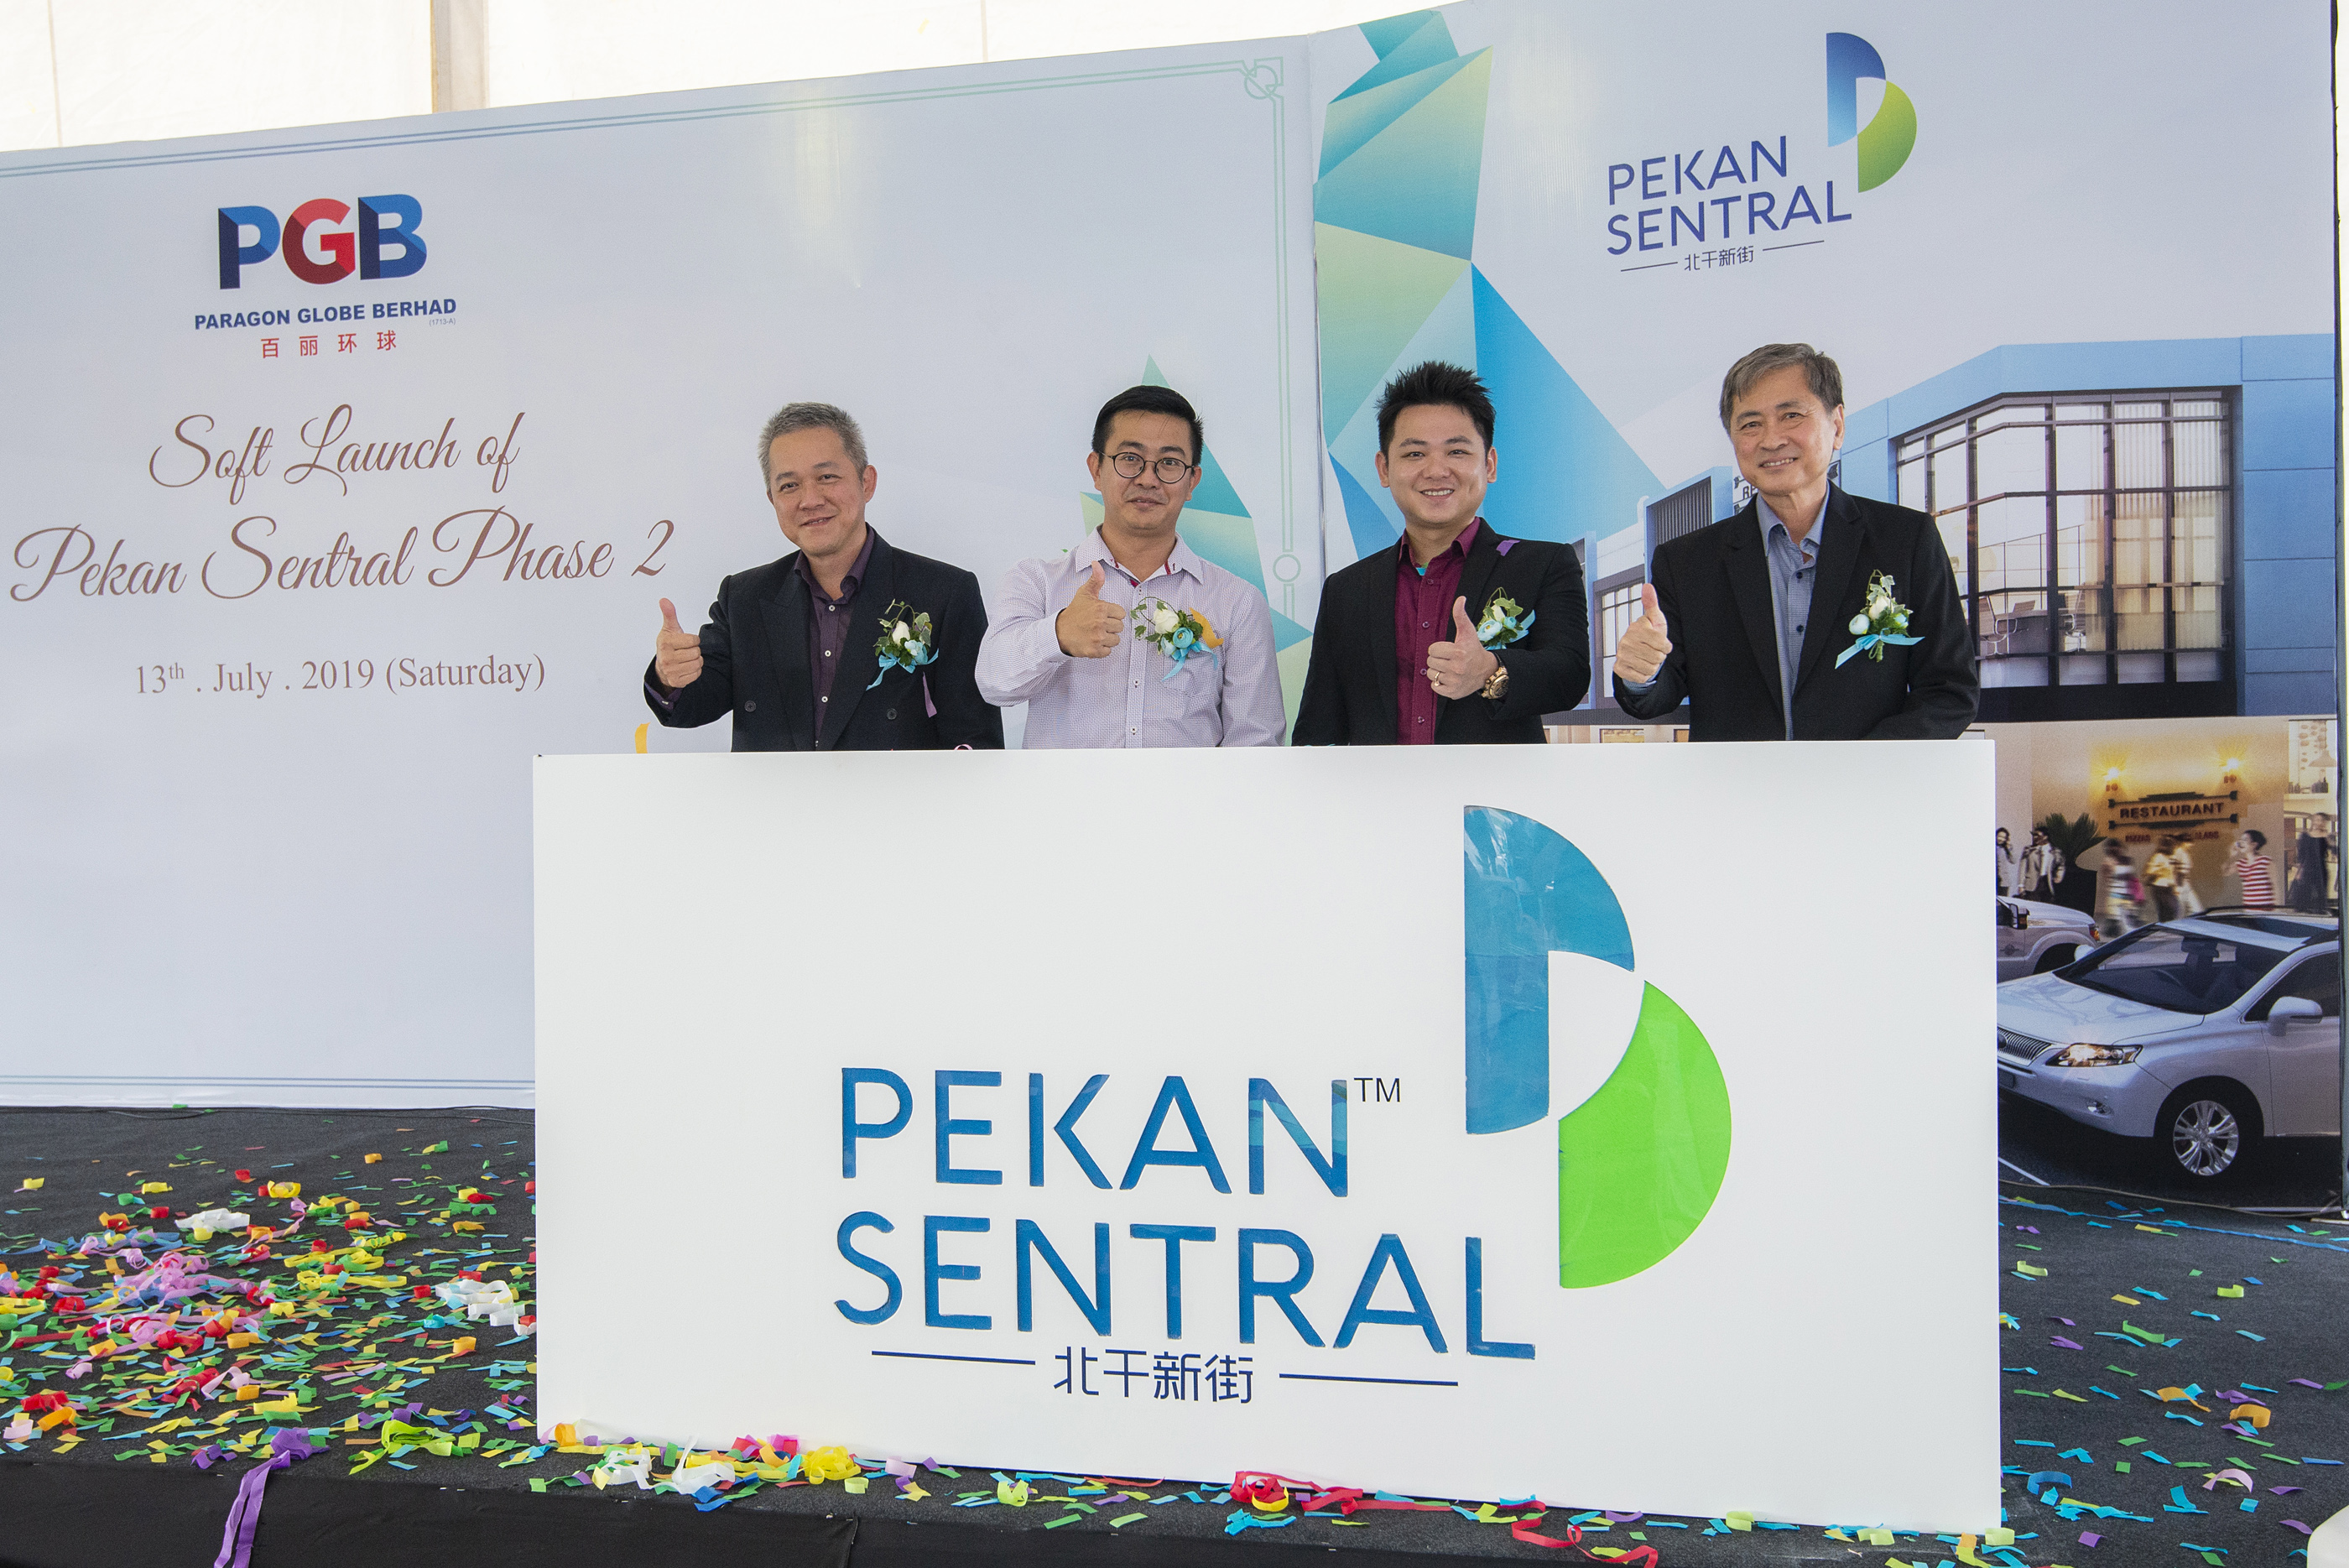 L-R: Tang Pei Hau, Development Manager of Joland Group; YB Yeo Tung Siong, ADUN Pekan Nenas; Dato'Sri Godwin Tan Pei Poh,Paragon Globe Berhad Group Executive Director and Tan Hui Boon,Paragon Globe Berhad Senior General Manager at the Pekan Sentral Phase 2 Soft Launch Ceremony.